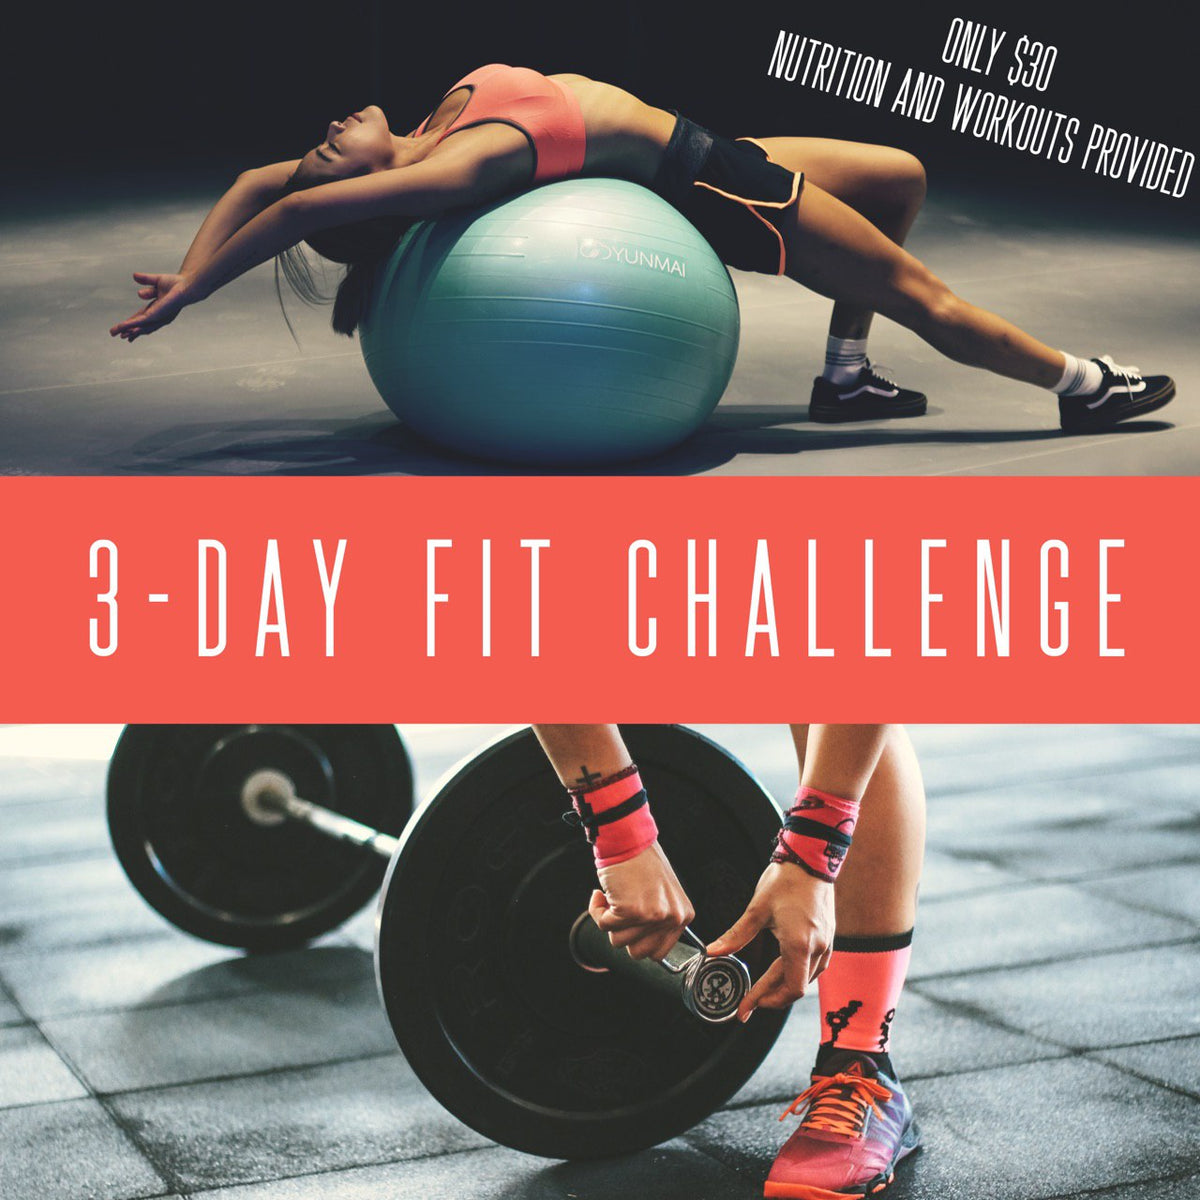 3 day challenges